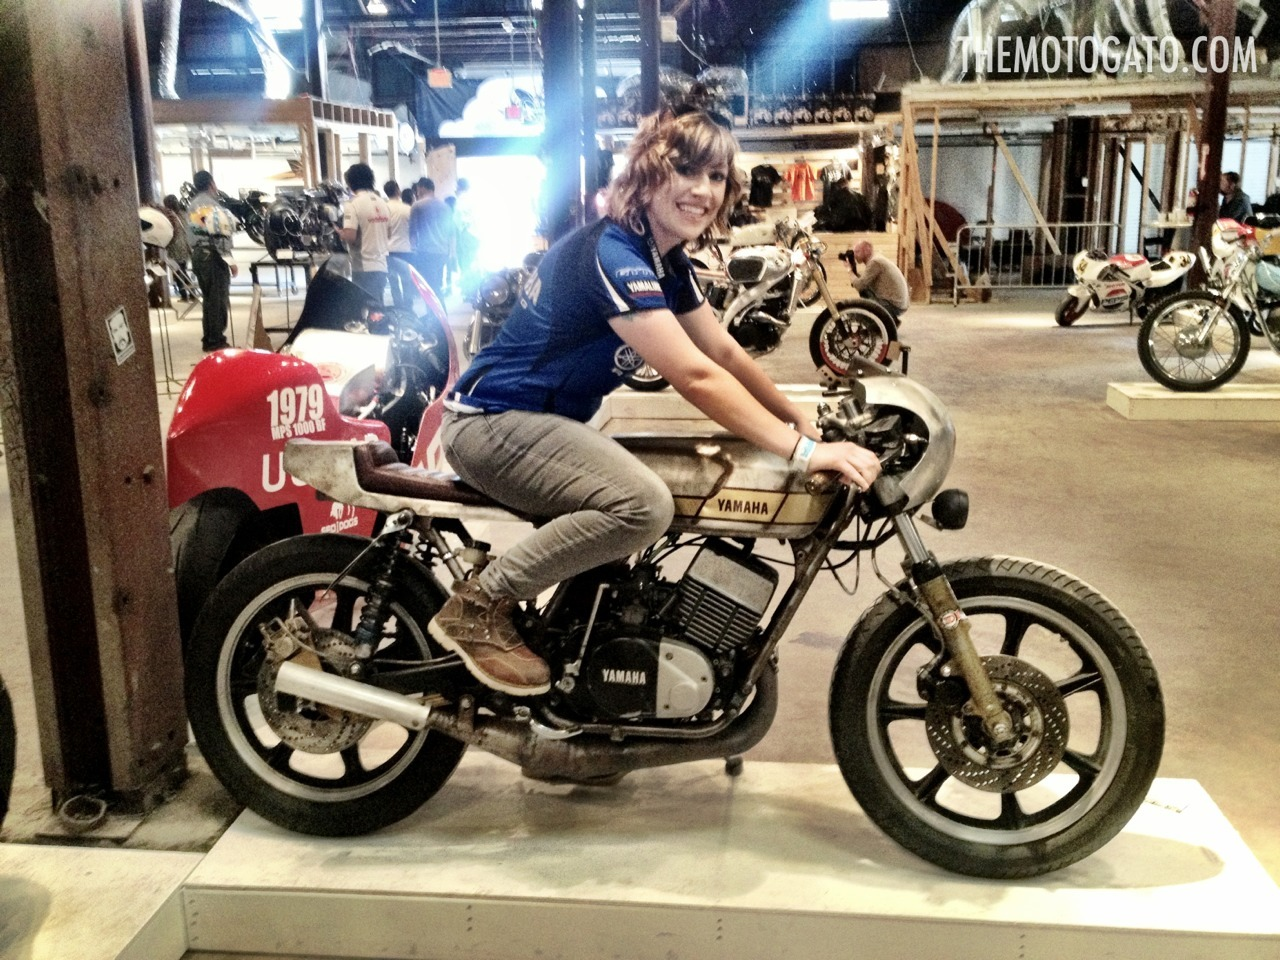 Gato at The 1 Motorcycle Show with her RD400